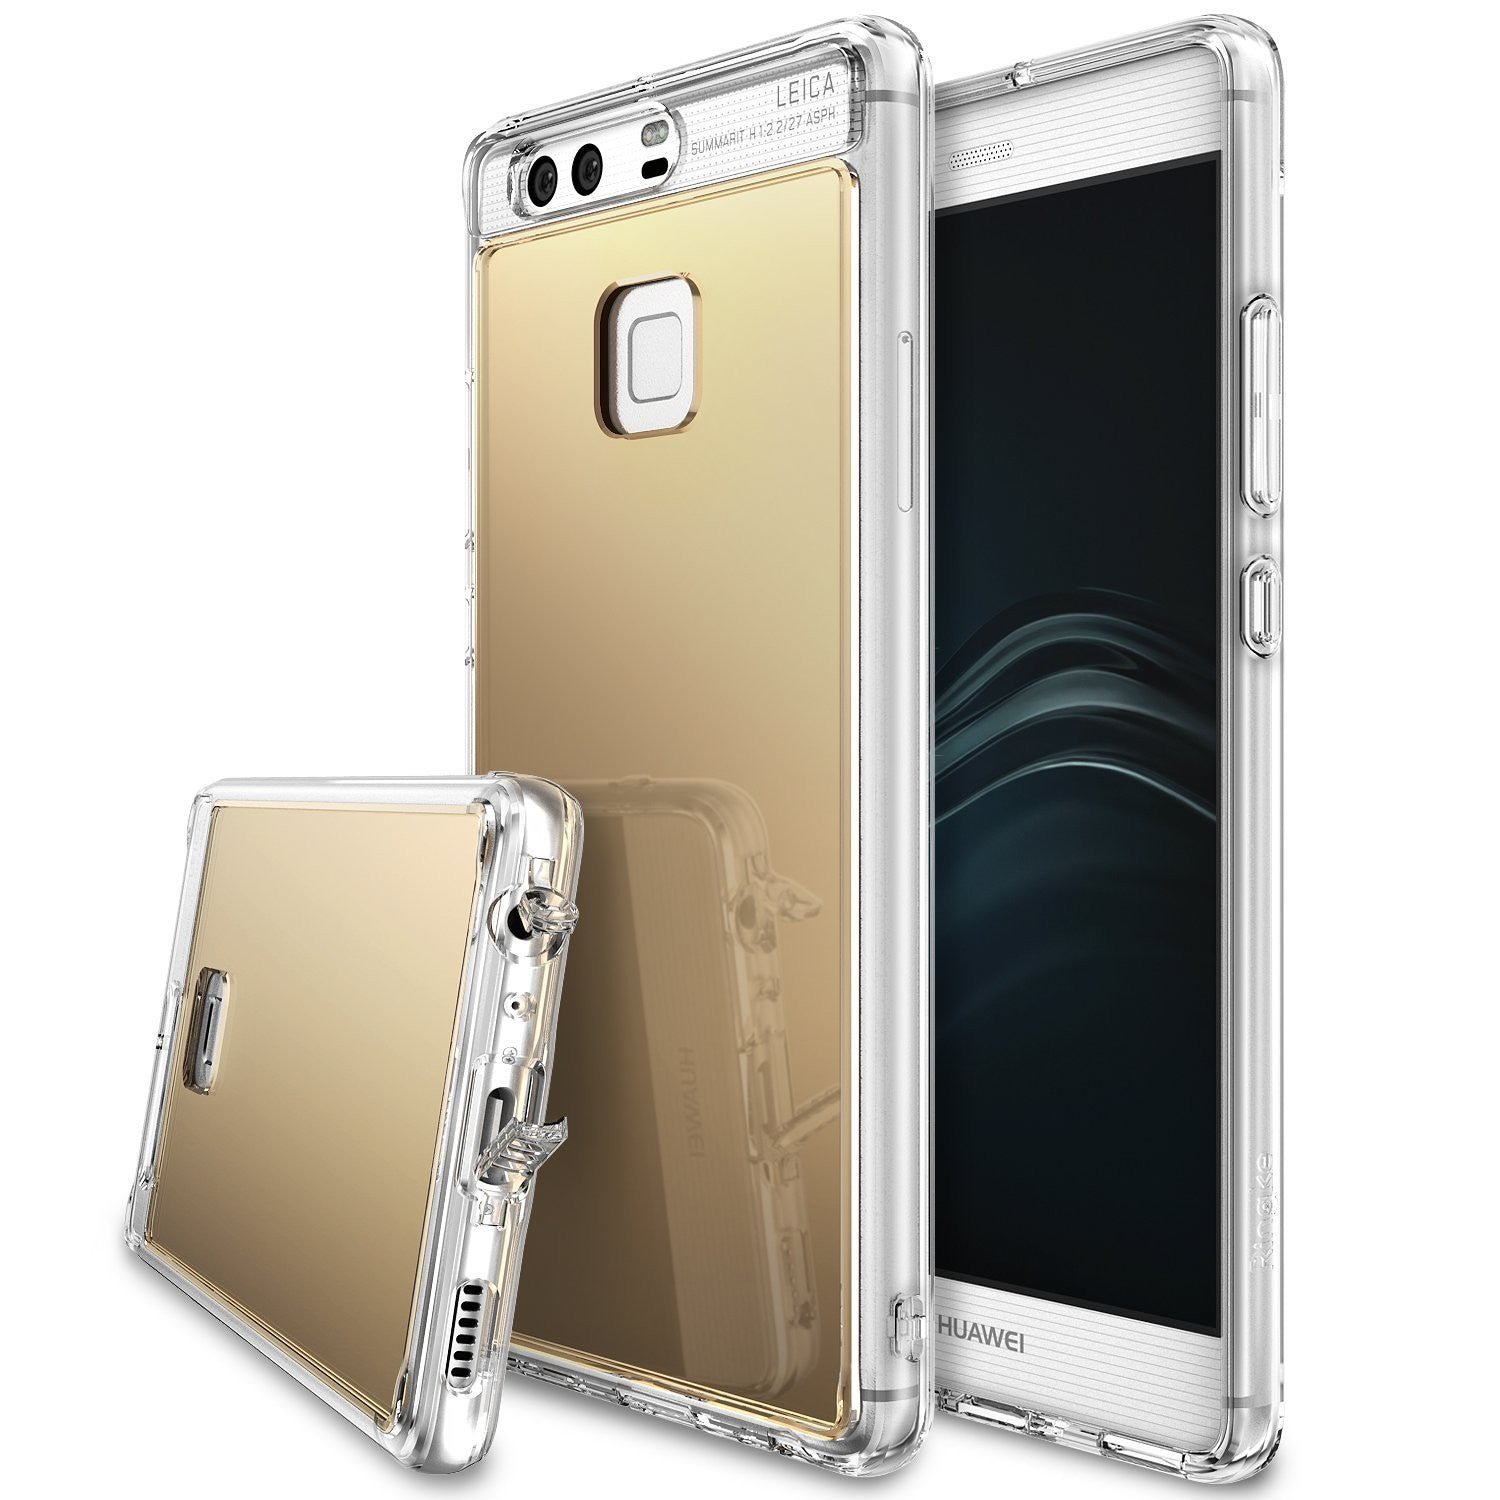 fusion case mirror case huawei mate 8 bright reflection radiant luxury mirror case rose gold